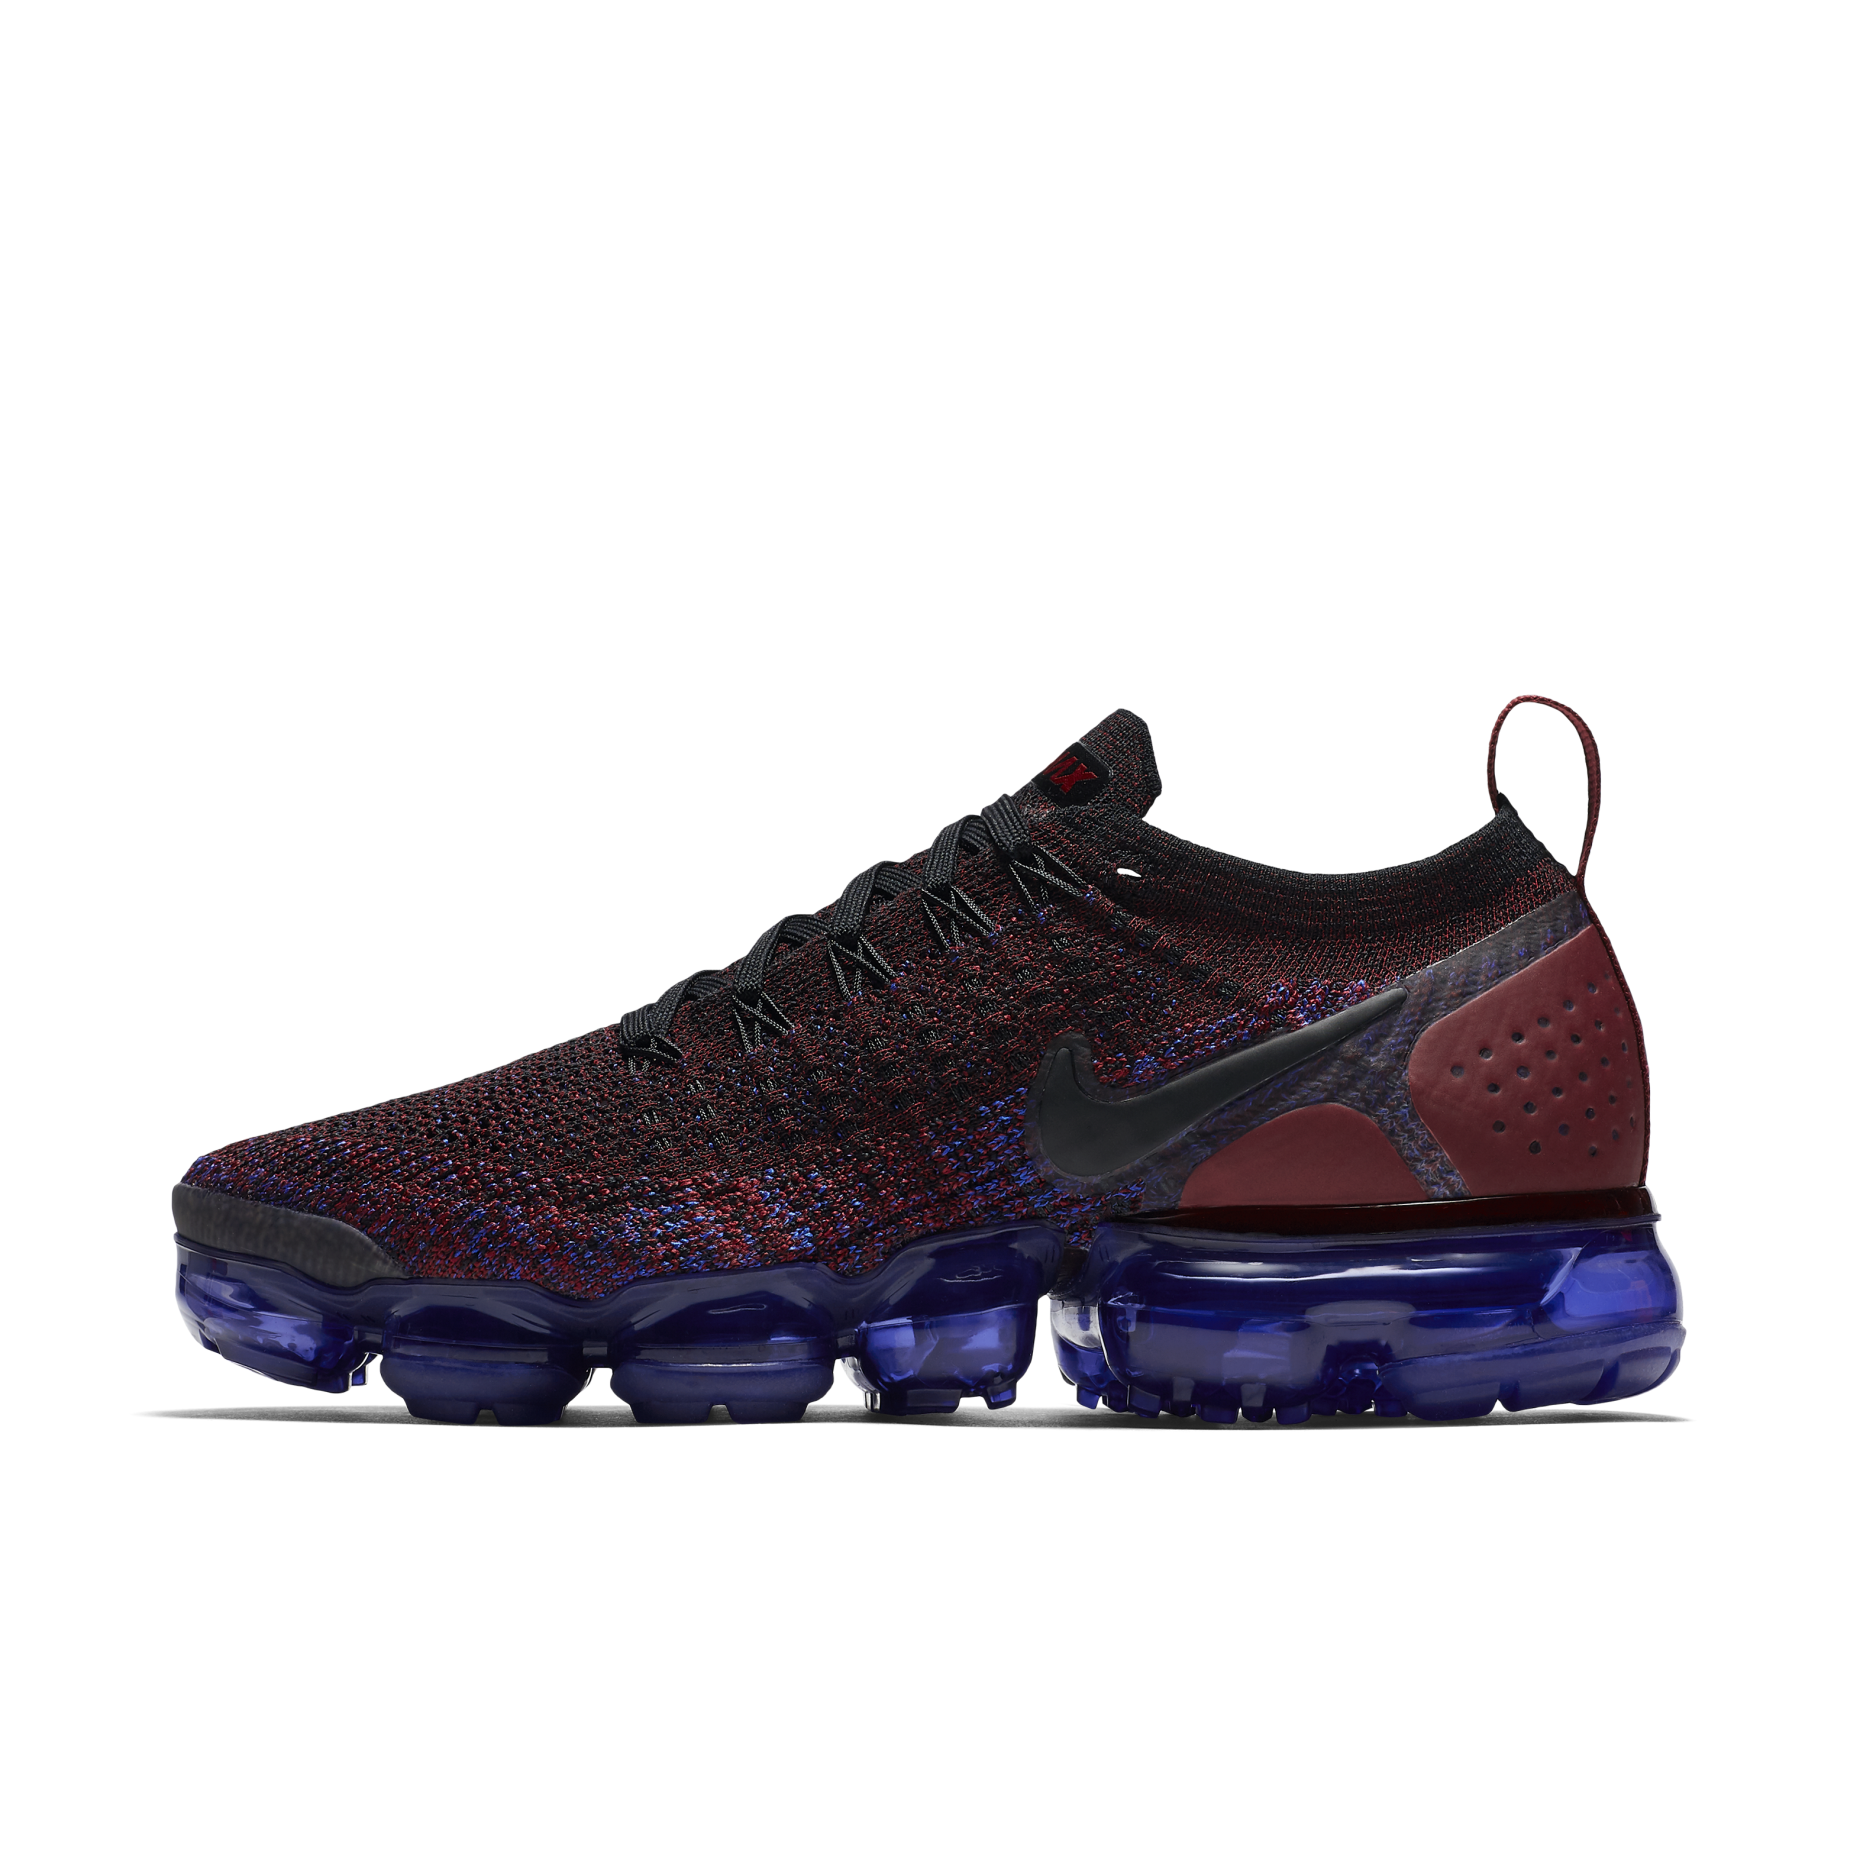 a5042dd7eff Nike_Wmns_Air_VaporMax_Flyknit_2_Black_Team_Red_Royal_942843-006_1.png?v=1535026611